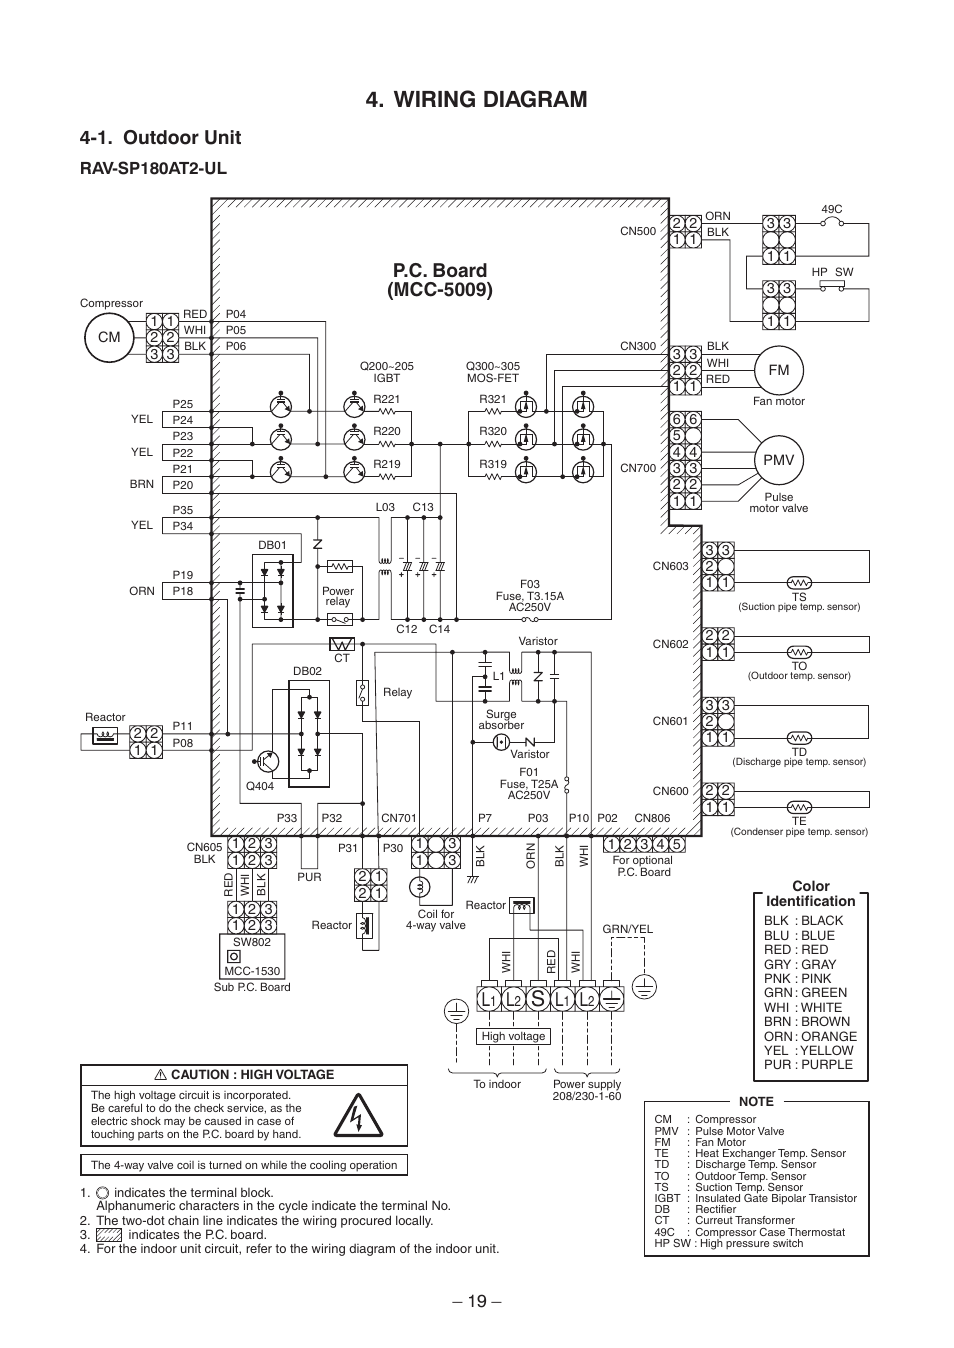 Wiring Diagram 1 Outdoor Unit P C Board Mcc 5009